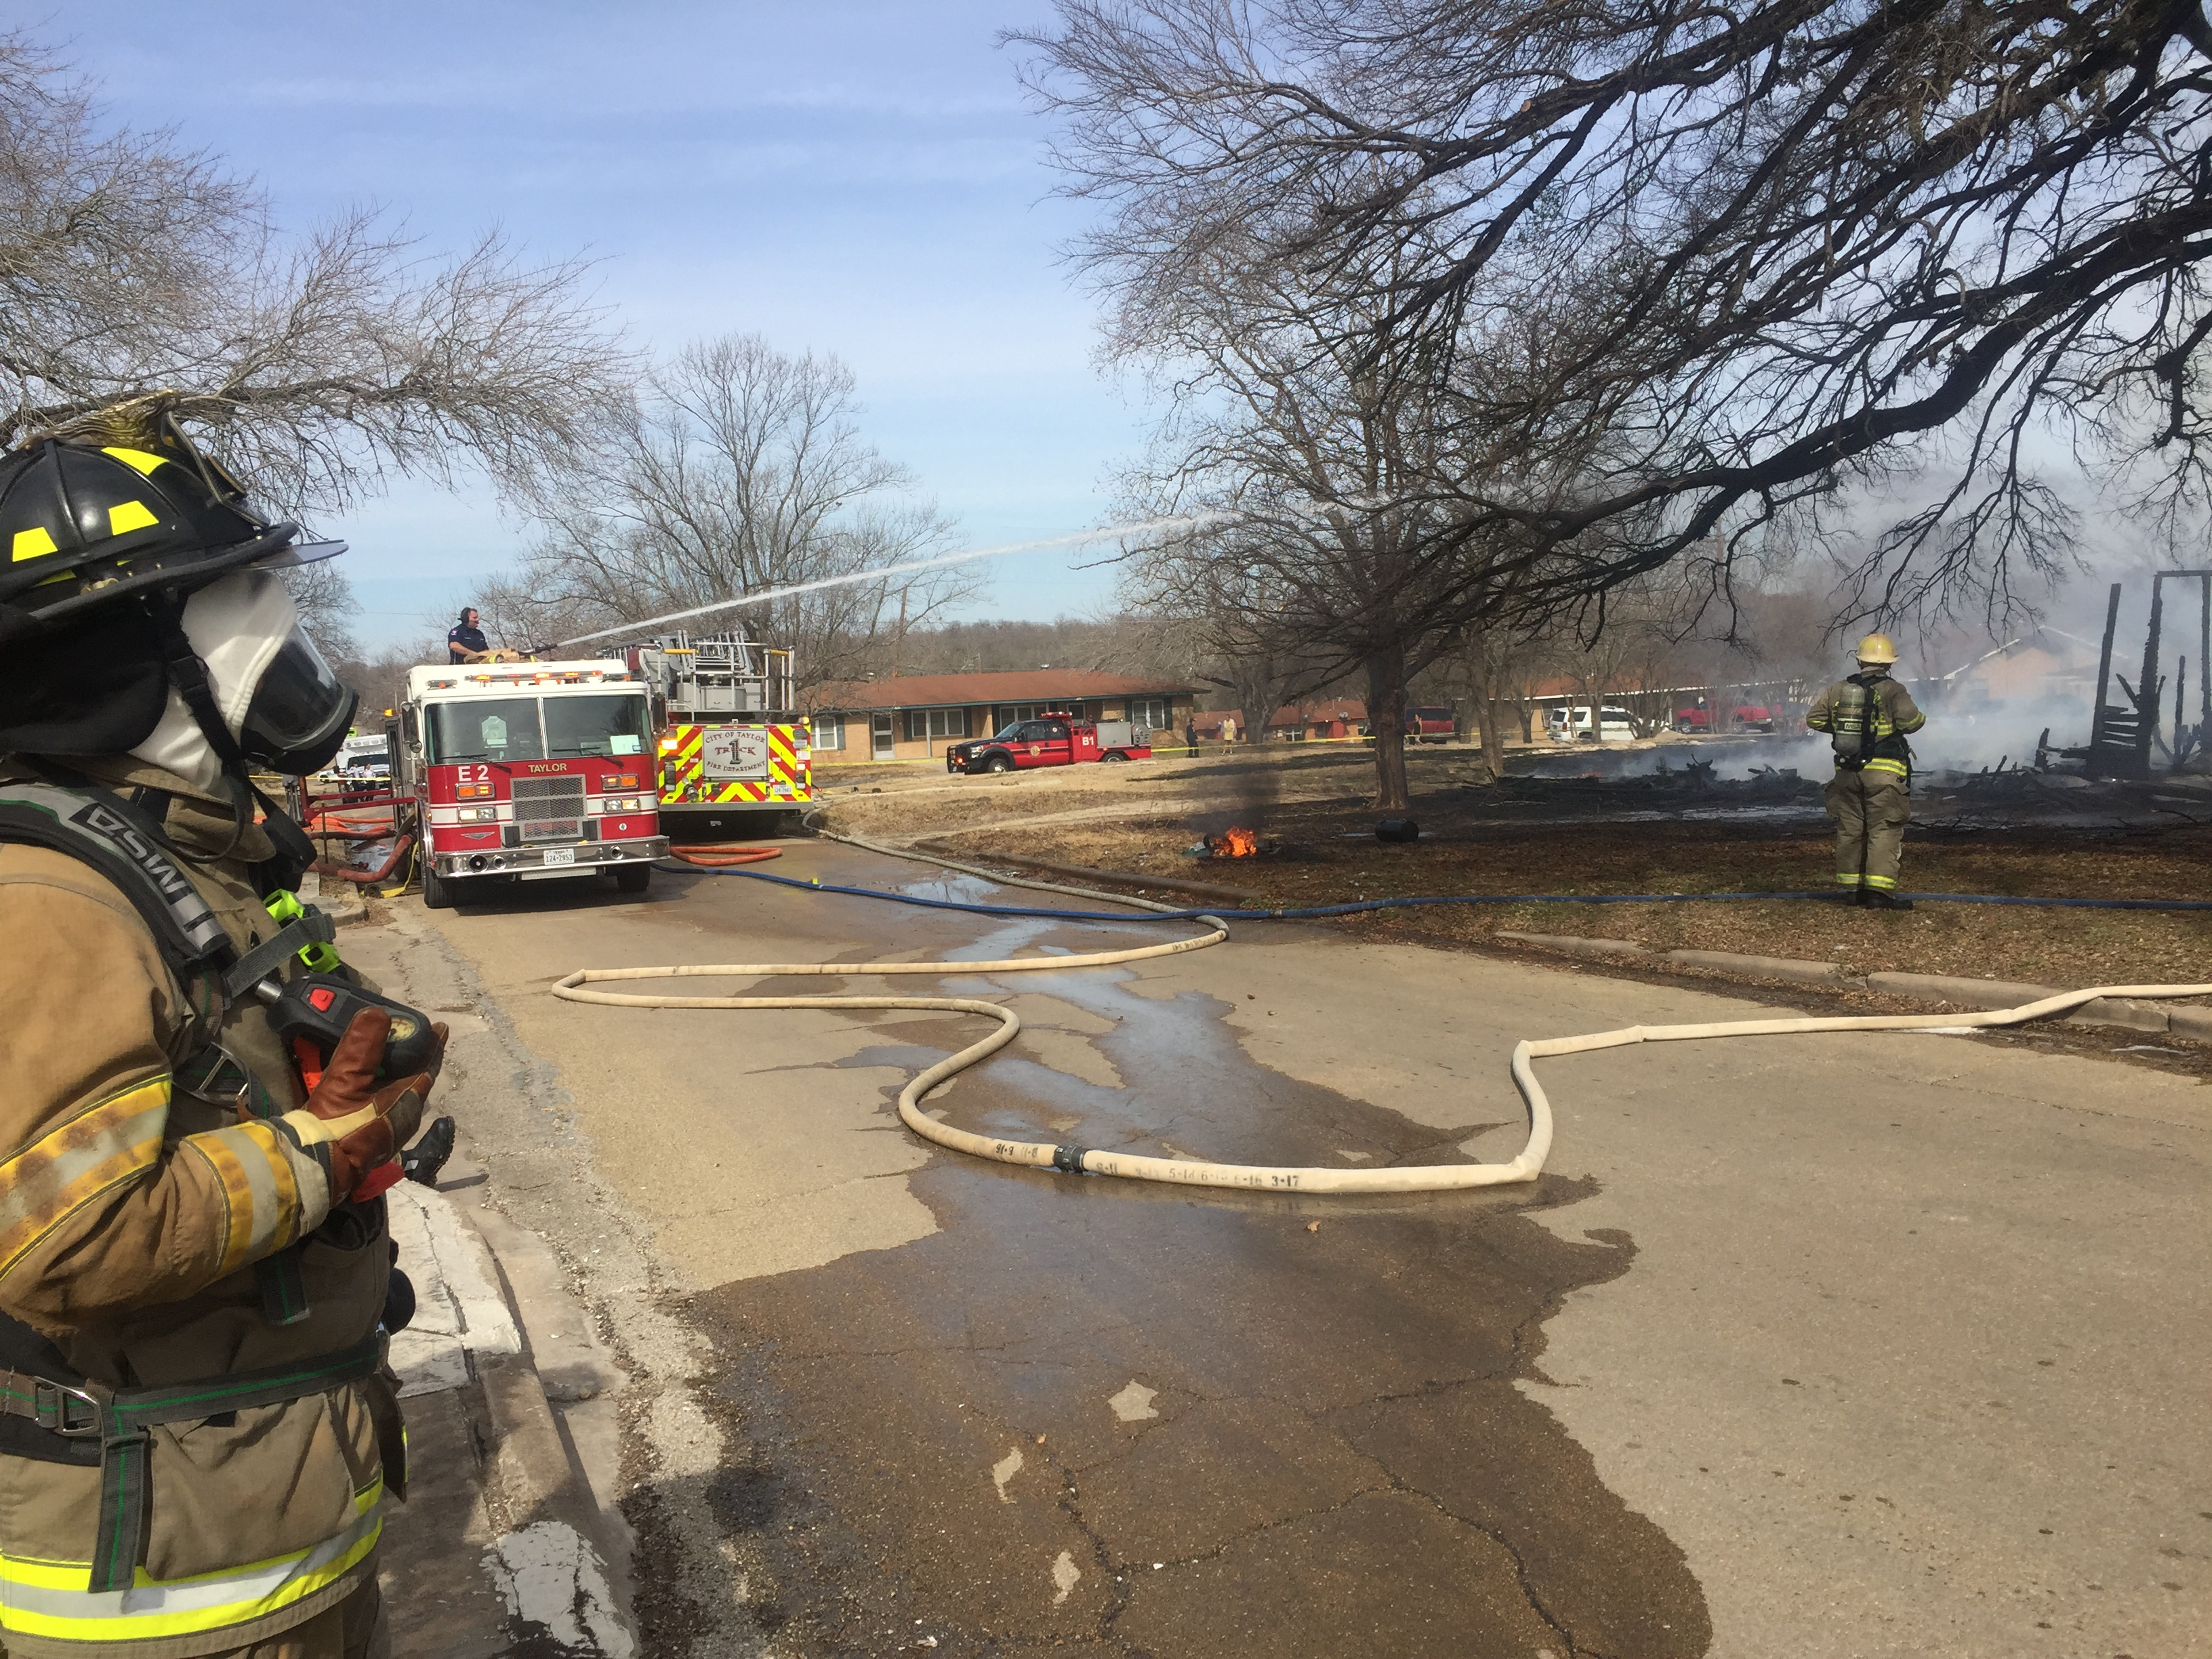 Firefighters working on a Taylor house fire on Washburn Street on Feb. 1, 2018. (Courtesy: City of Taylor)